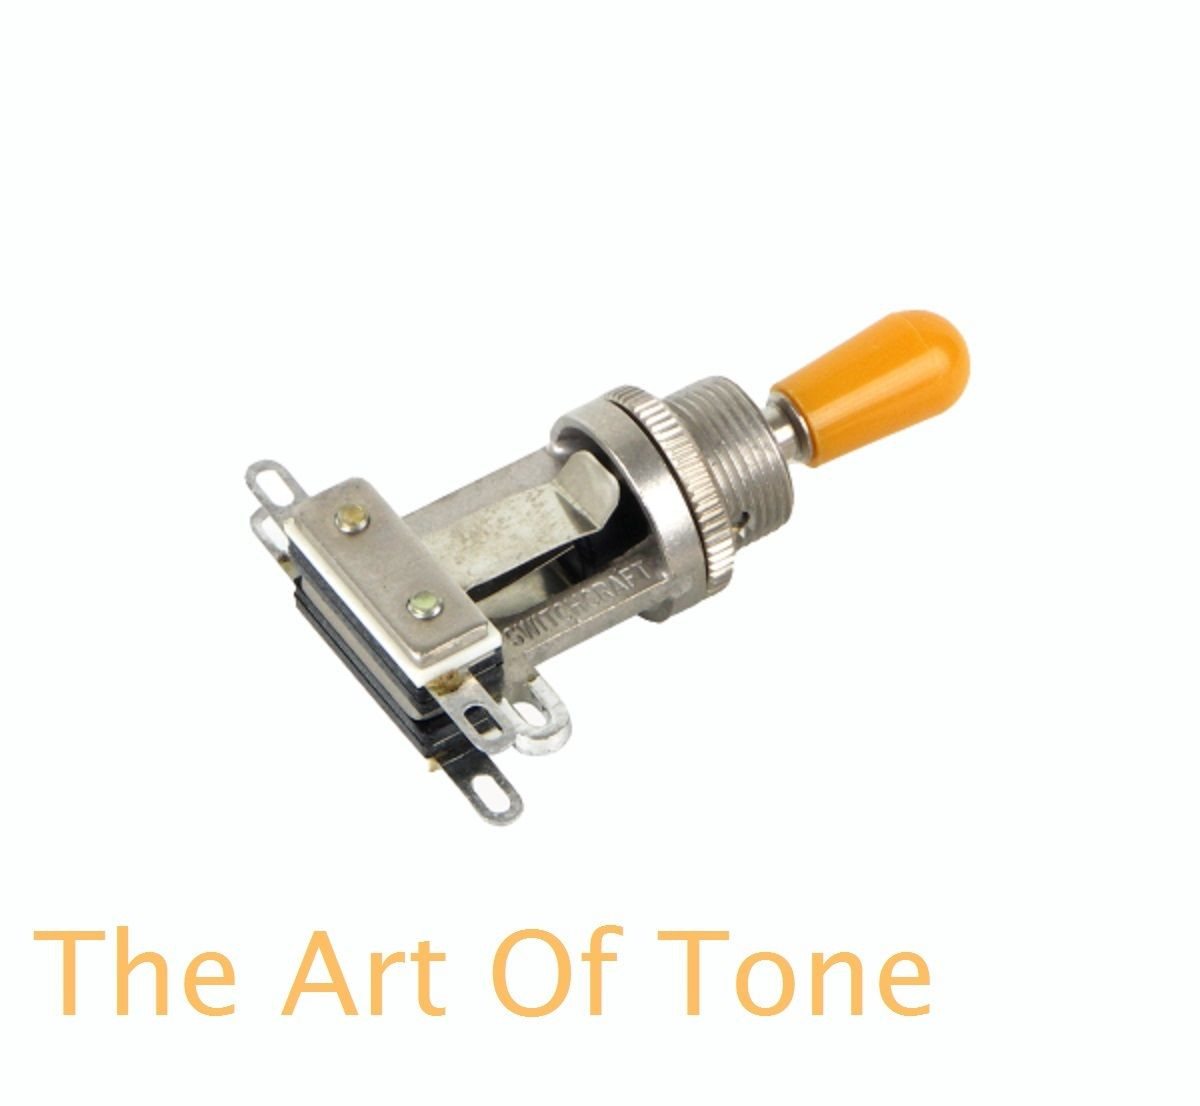 Switchcraft Short Frame Toggle with amber switch tip - The Art Of Tone